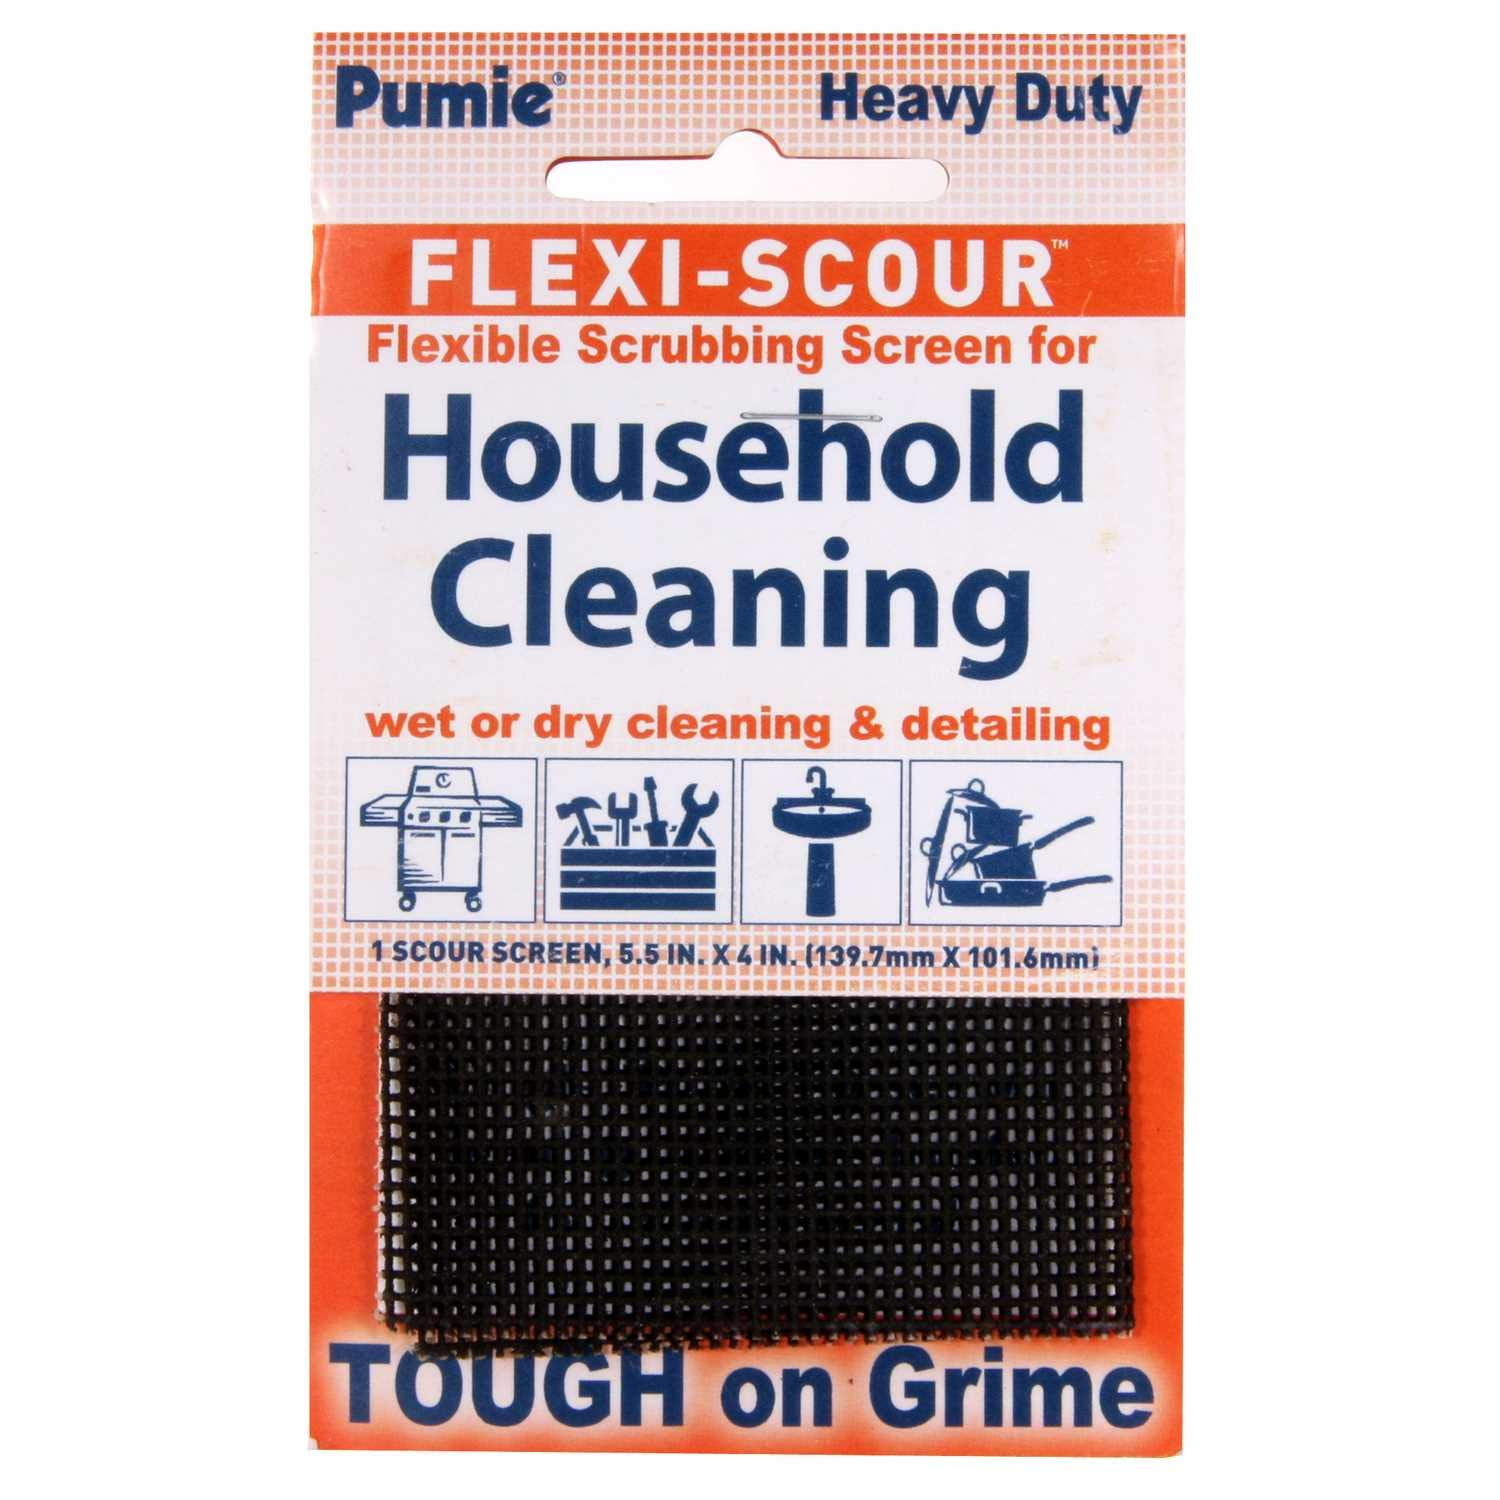 Pumie Flexi-Scour Flexible Scrubbing Screen for Household Cleaning, 5.5'' x 4'', Abrasive Grit Cleaning Screen, Clean Grills, Remove Carbon, Rust and Scale, Pack of 24